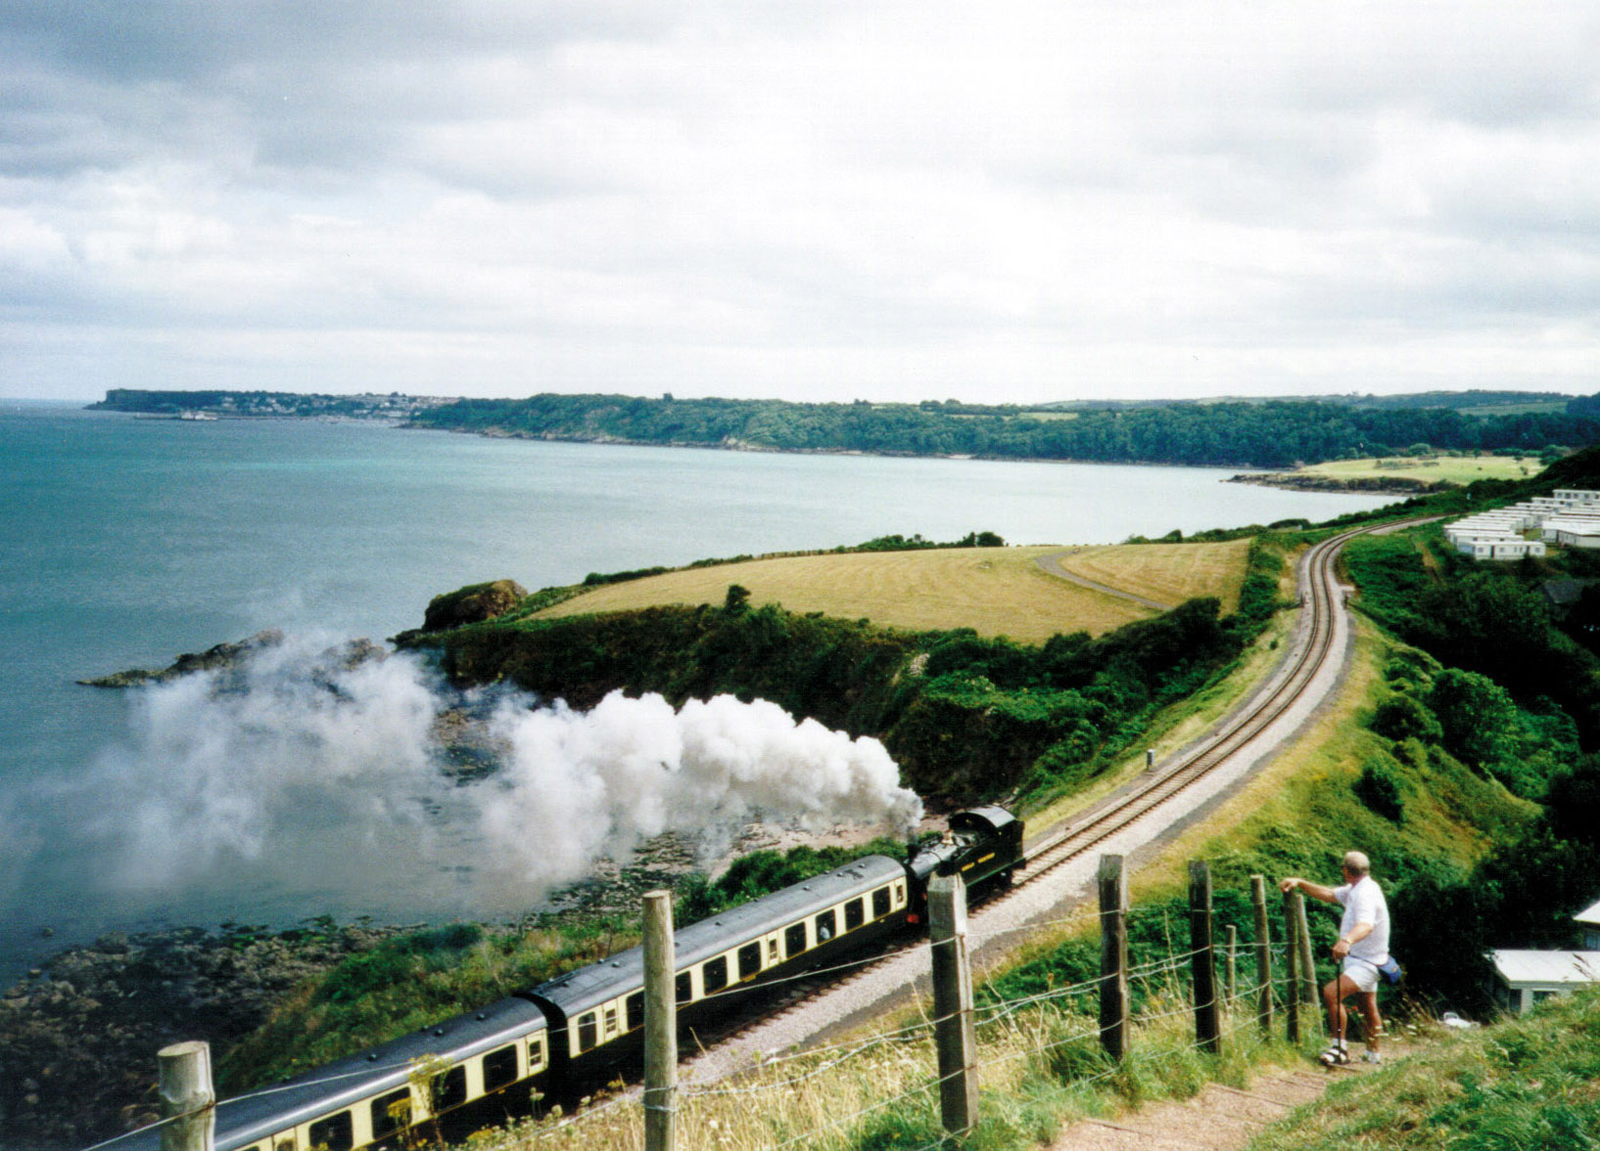 The Dartmouth Steam Railway on The English Riviera. An attraction that is easily accessed from The Hesketh Crescent Apartment